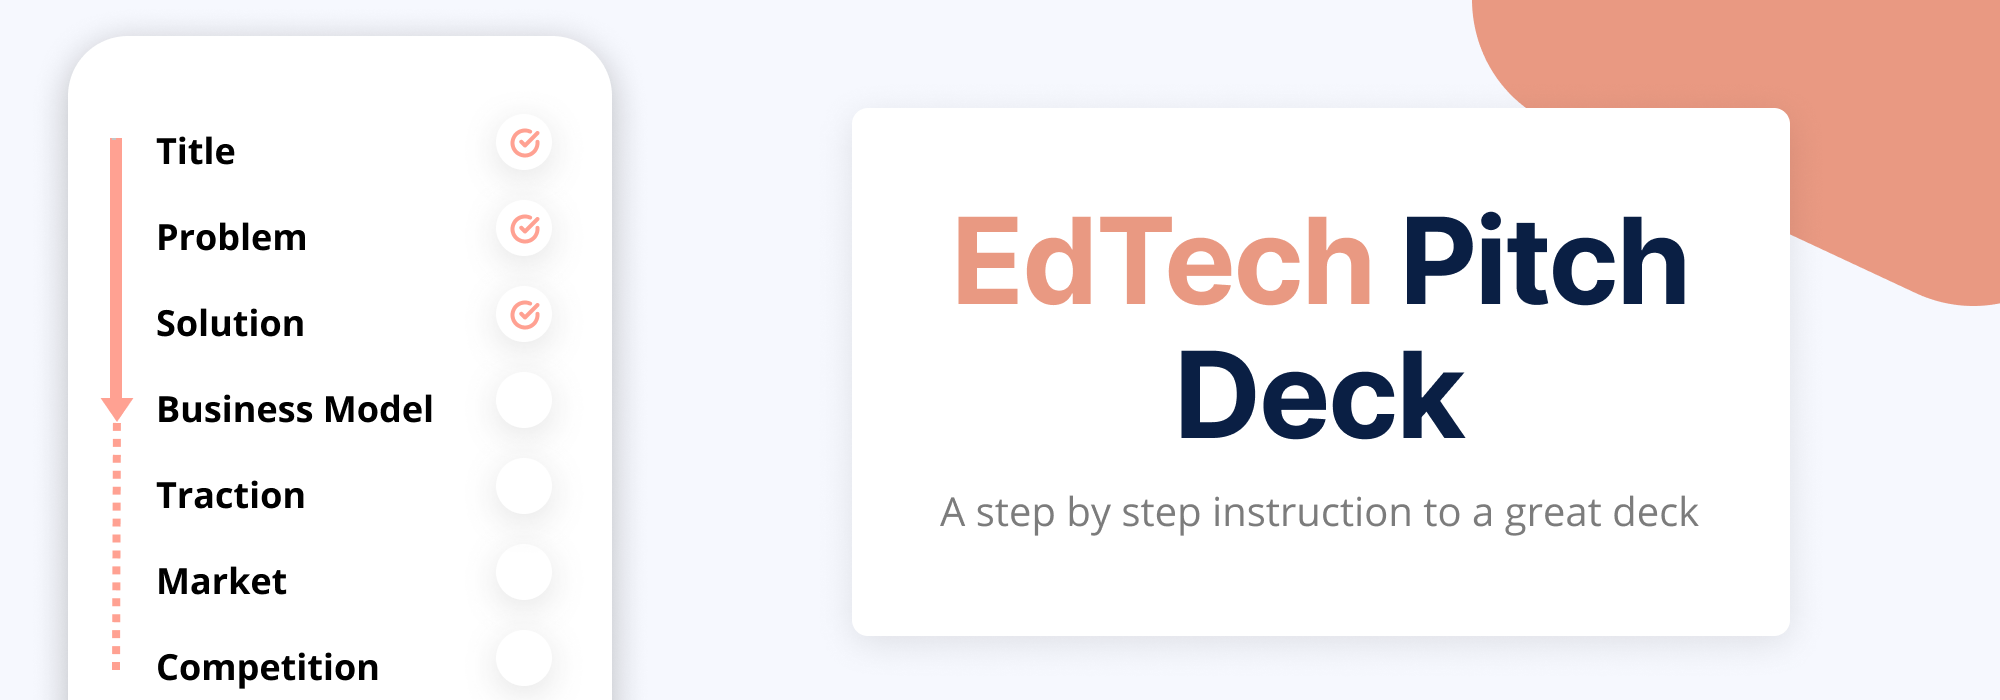 How to Create an EdTech Pitch Deck